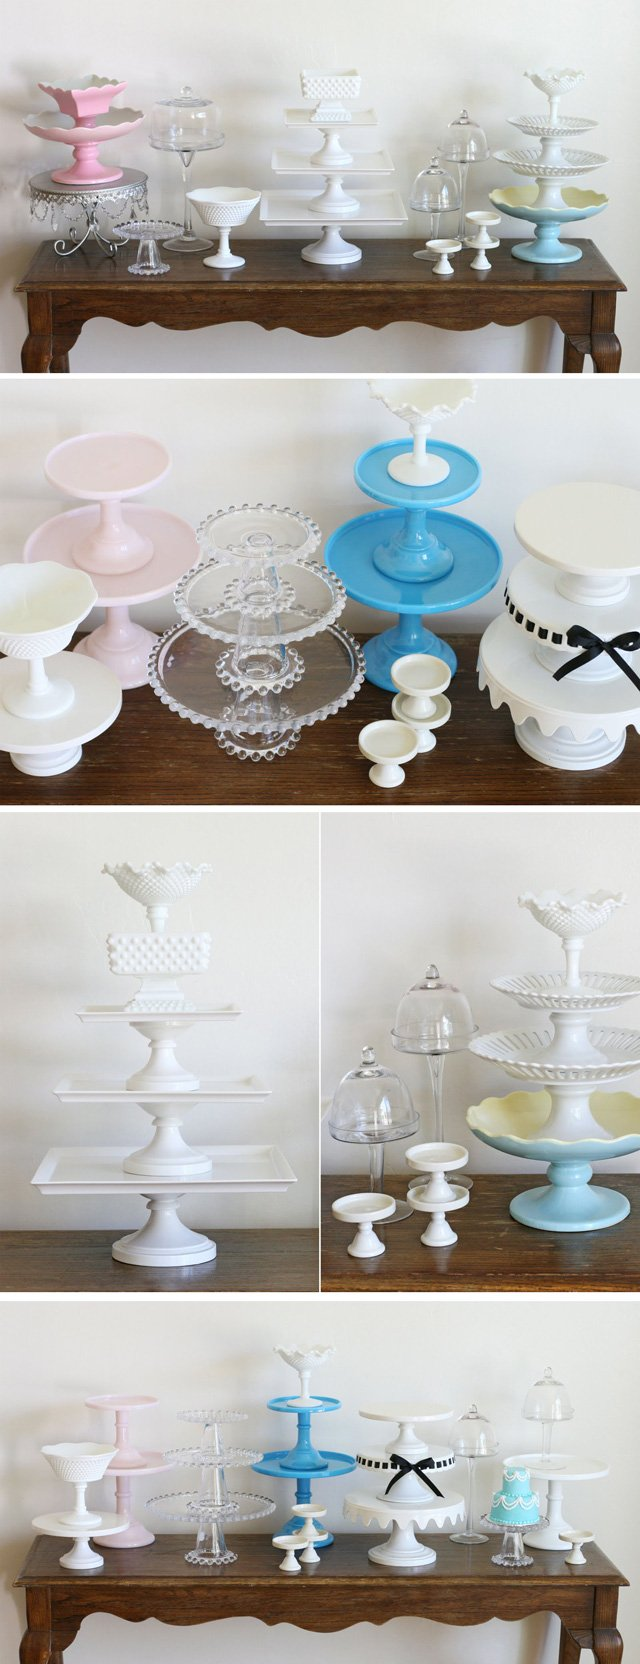 Incredible Collection of Cake Stands!! - via GloriousTreats.com